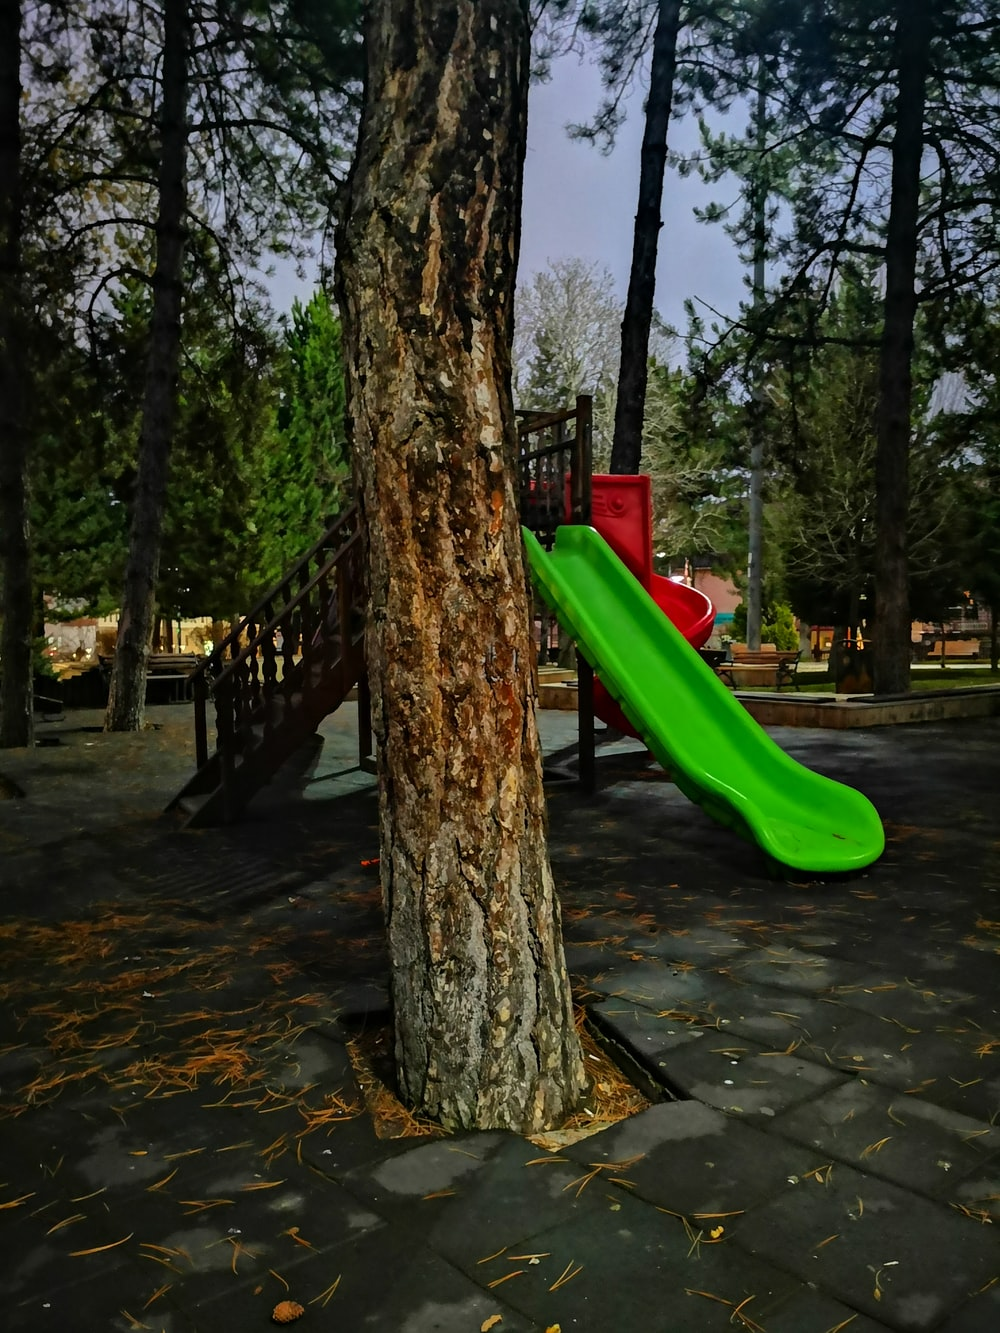 green, red, and brown outdoor playset